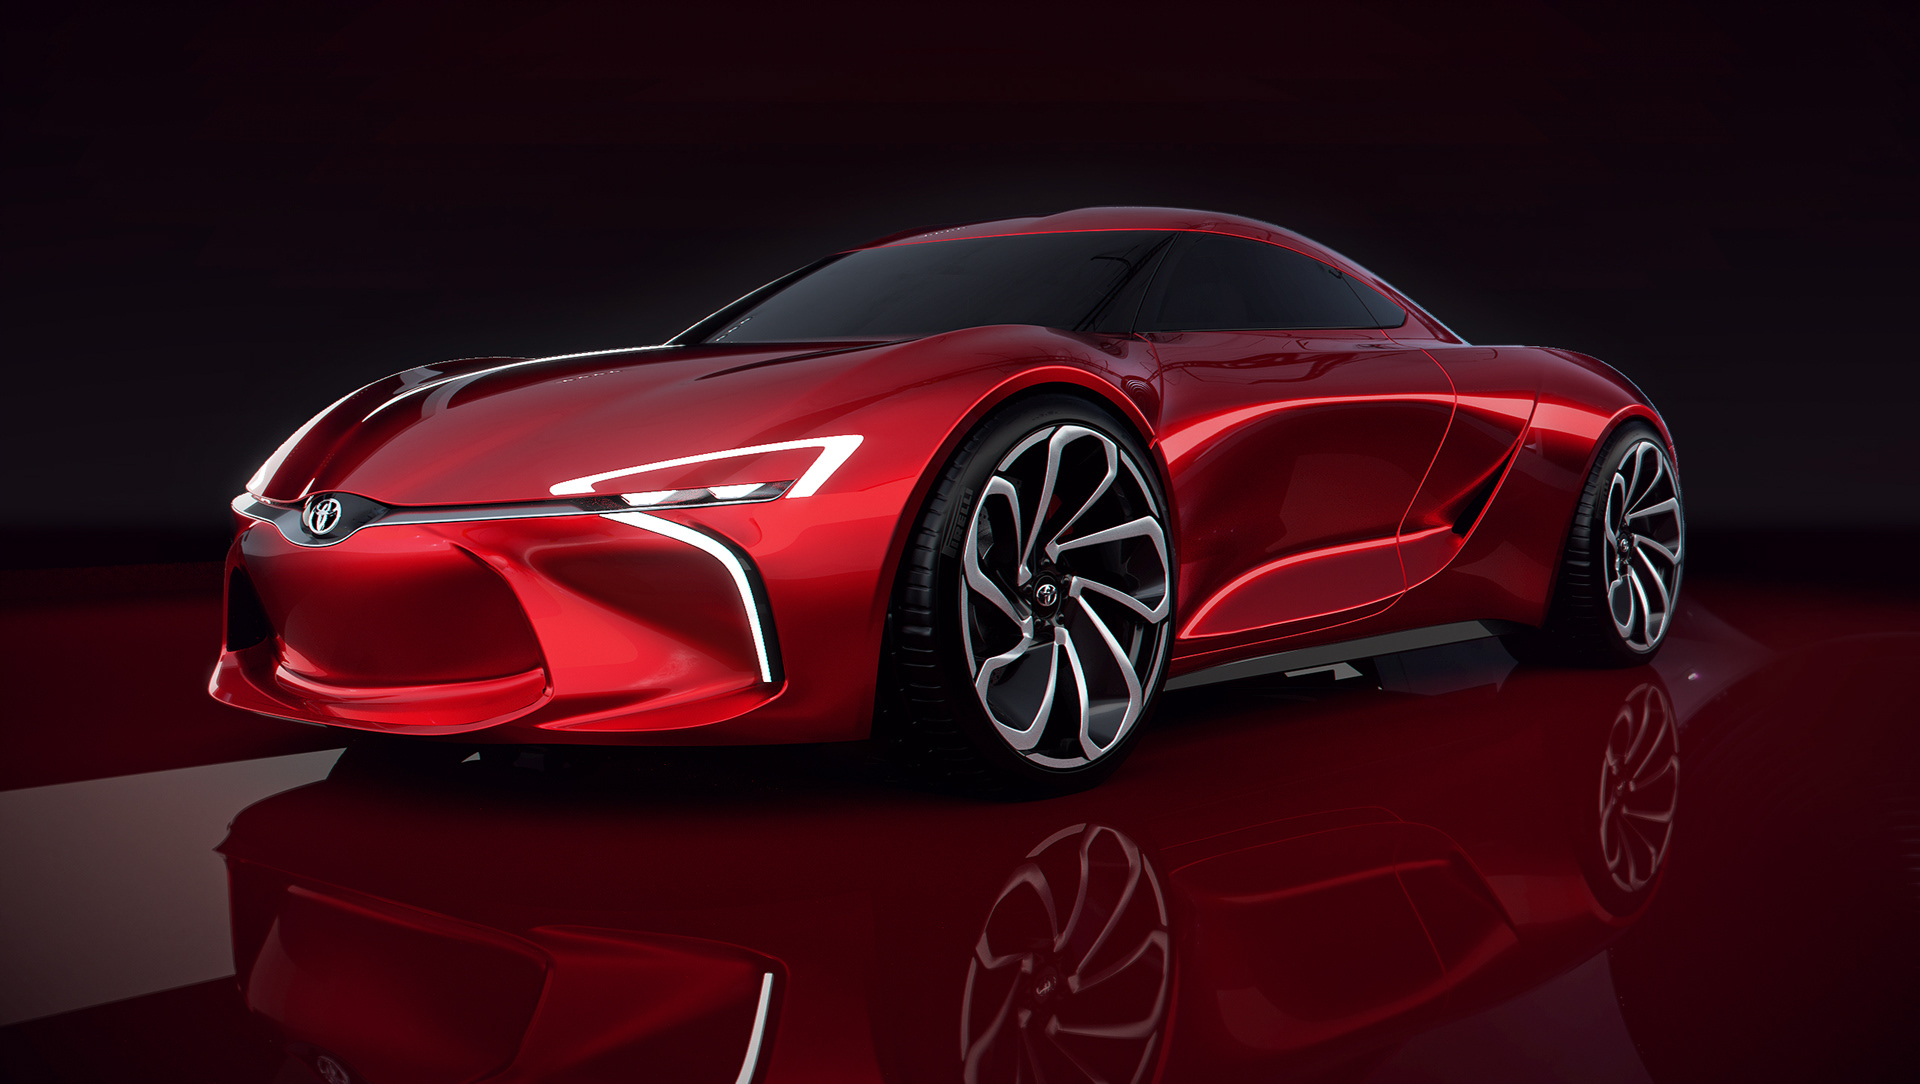 The Toyota MR4 is Probably Coming, But Not As Soon As We Hoped